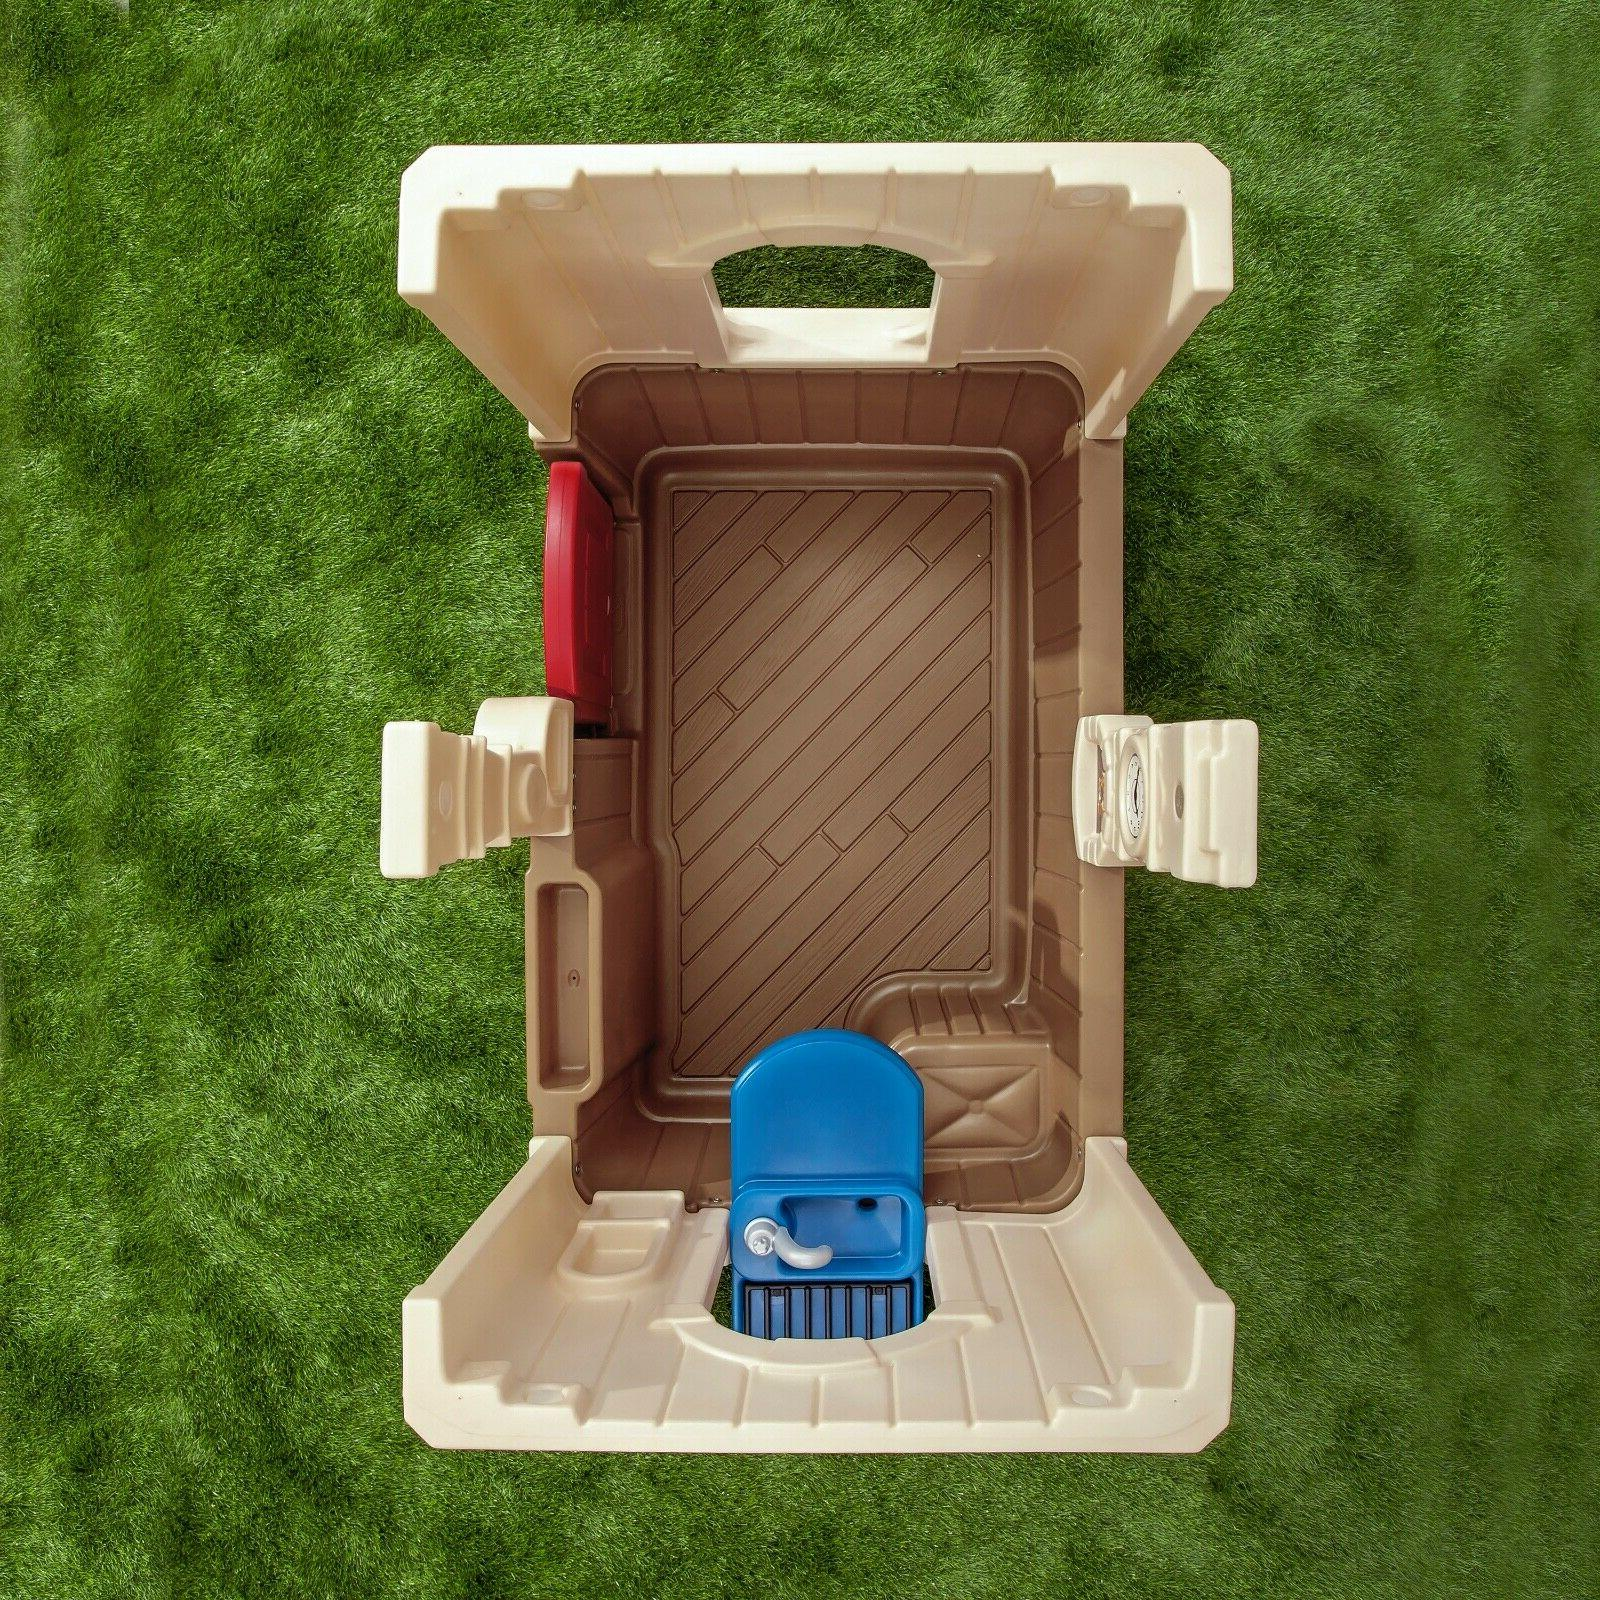 Deluxe Cottage Playhouse Outdoor Plastic